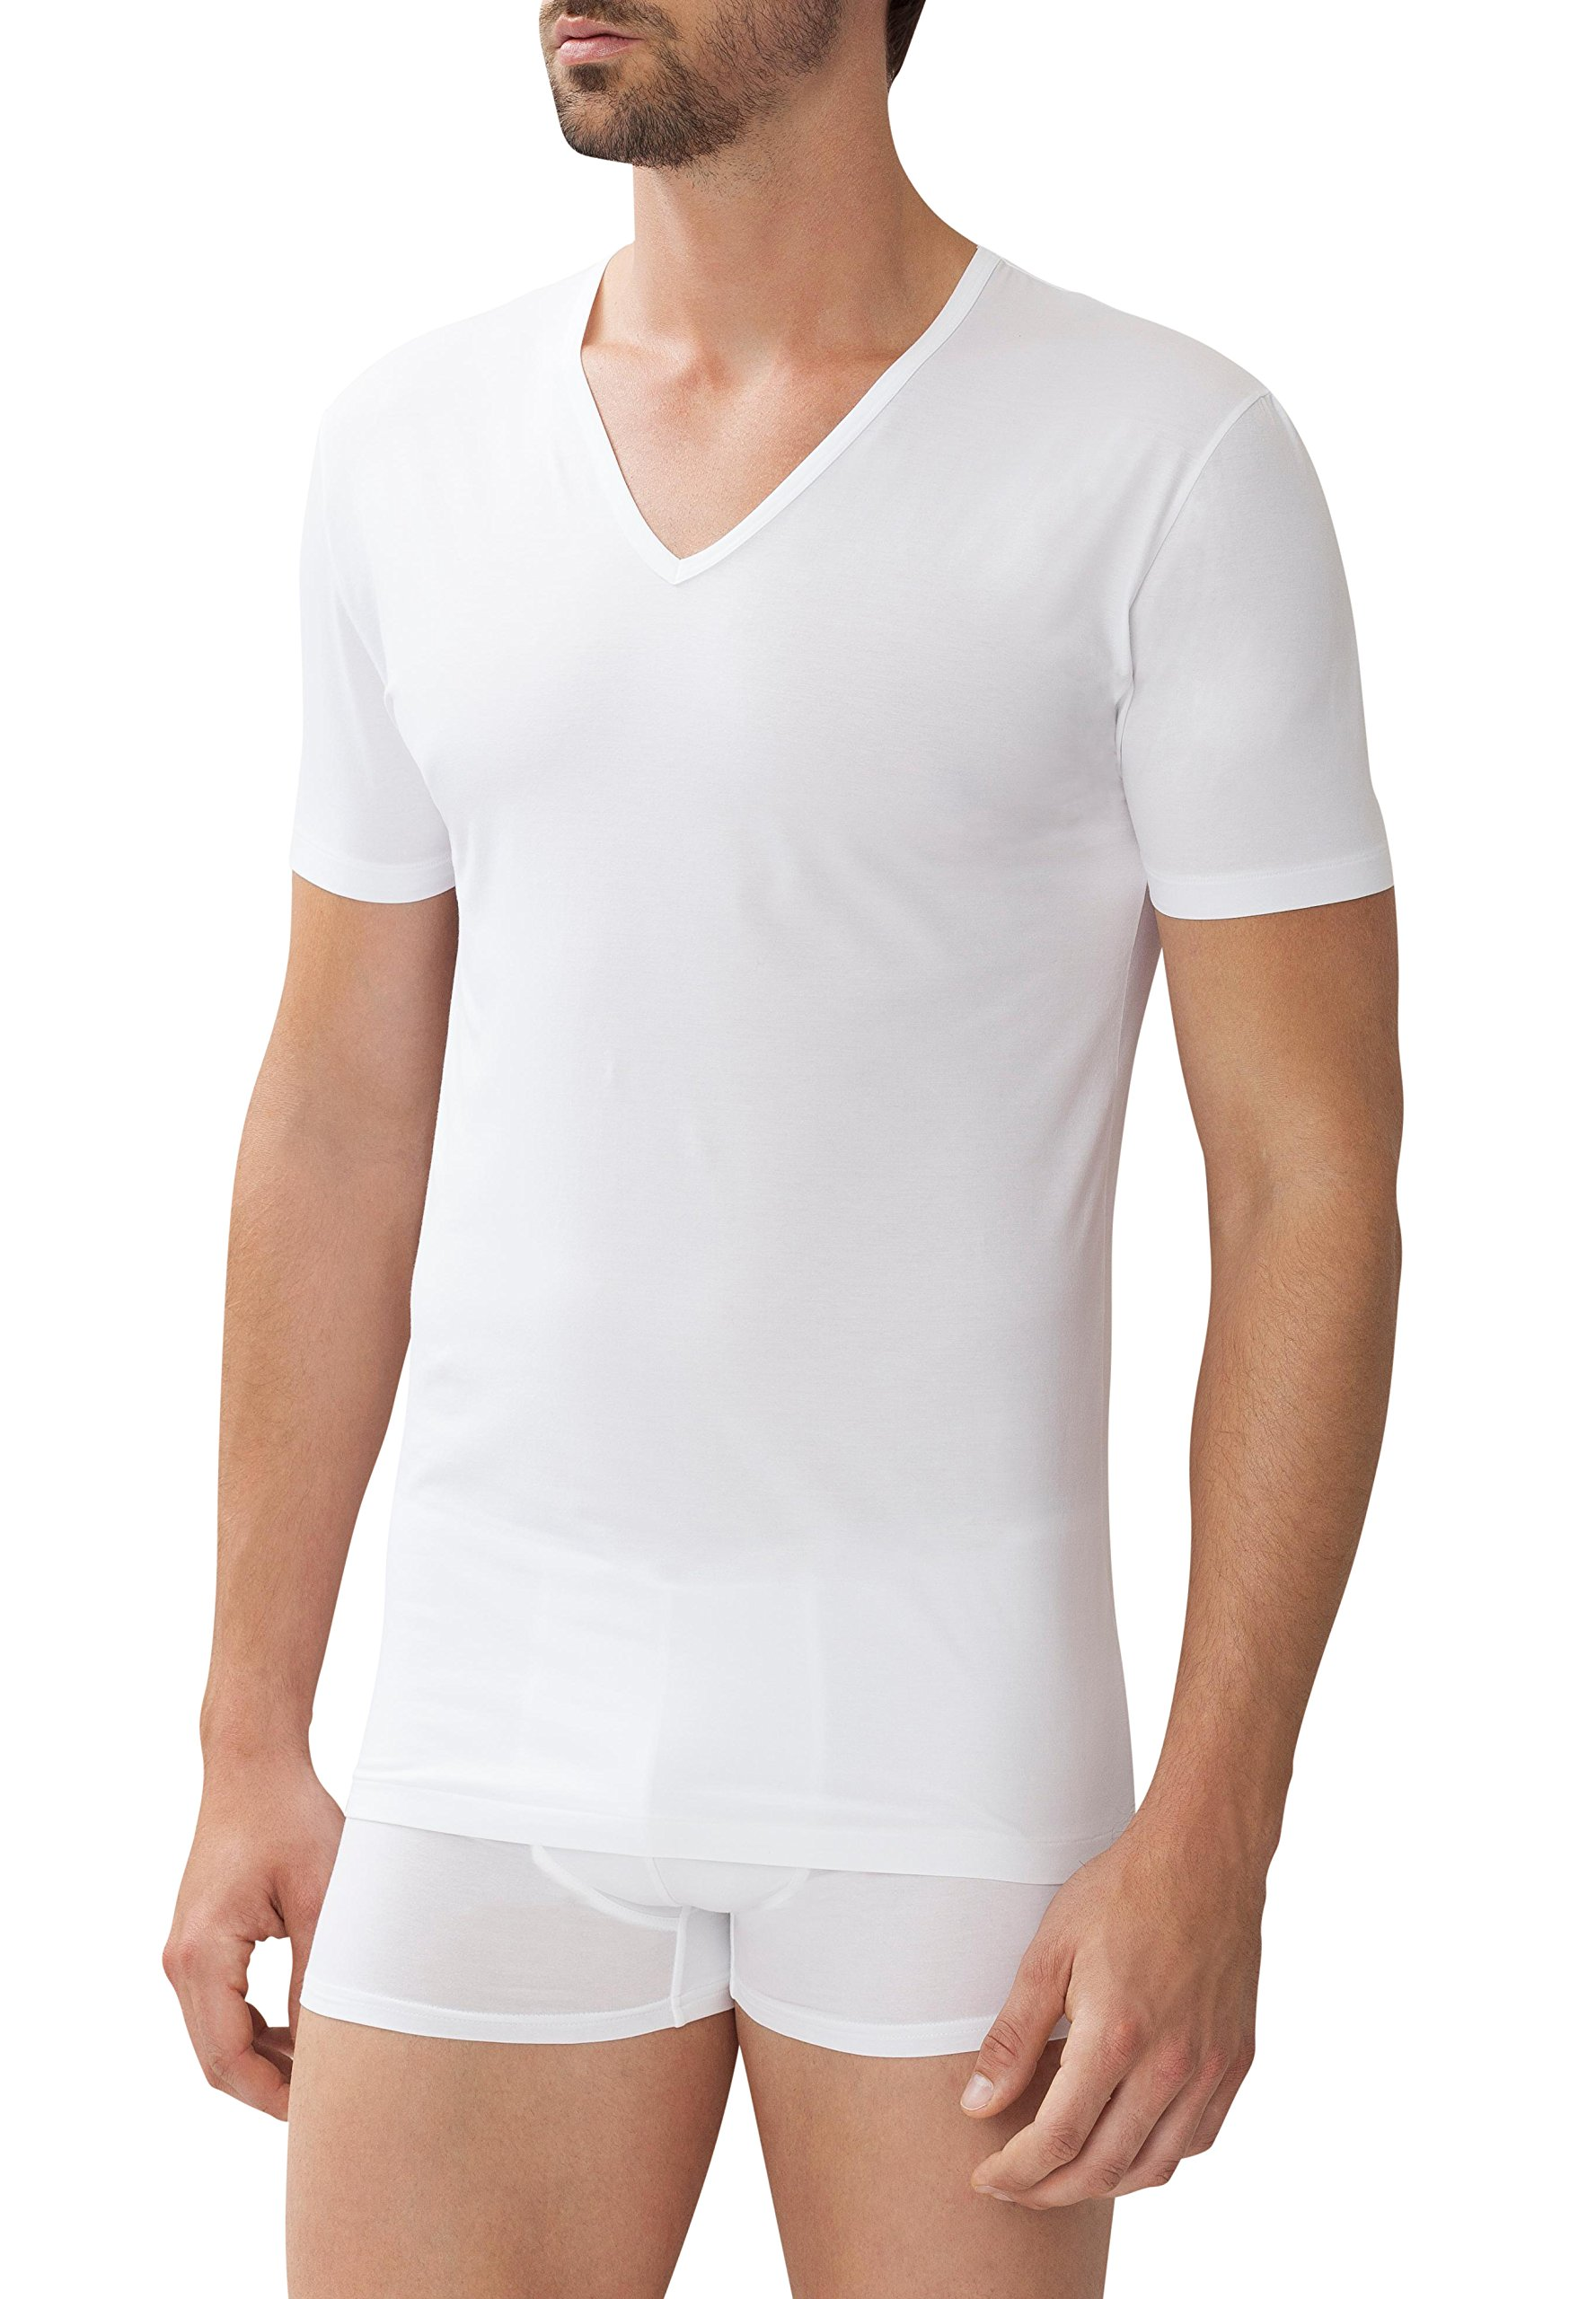 Zimmerli V-Neck Short Sleeve T-Shirt L White